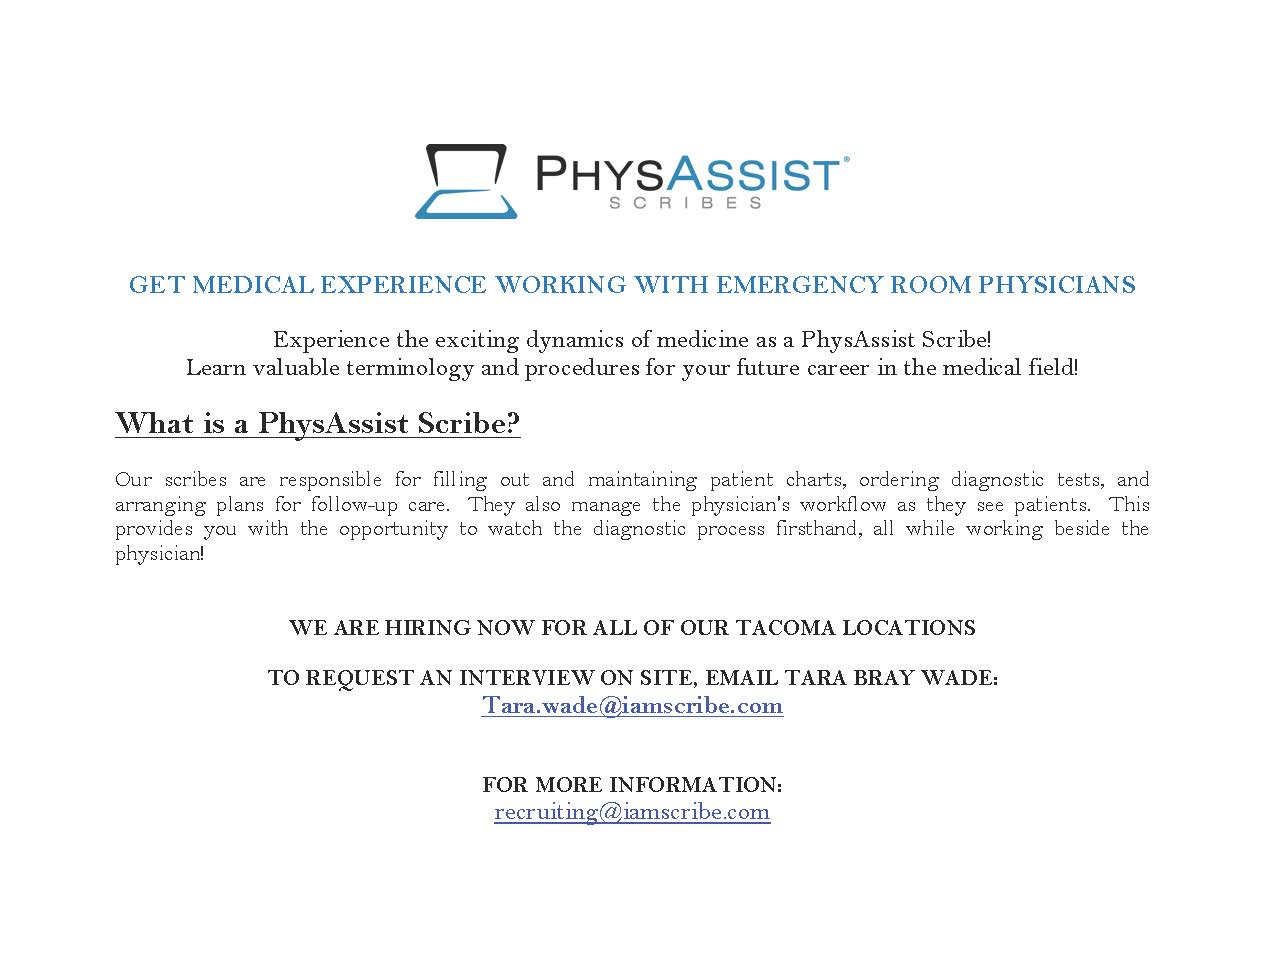 PhysAssist Scribes: Pre-health Students & Graduate Students